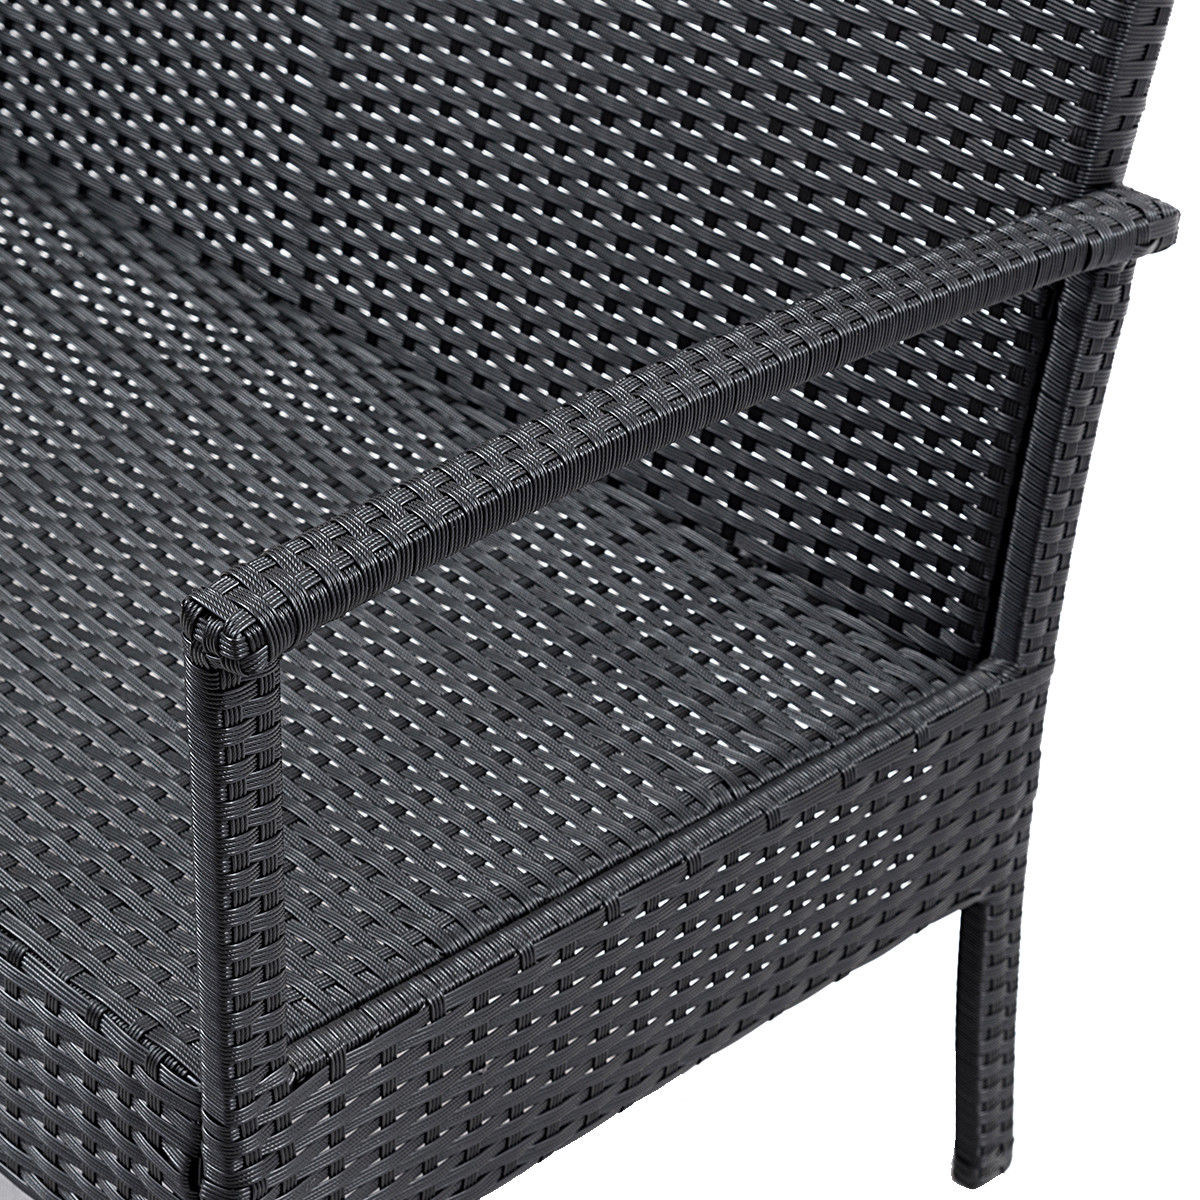 Costway 4 PCS Outdoor Patio Rattan Wicker Furniture Set Table Sofa Cushioned Deck Black 4